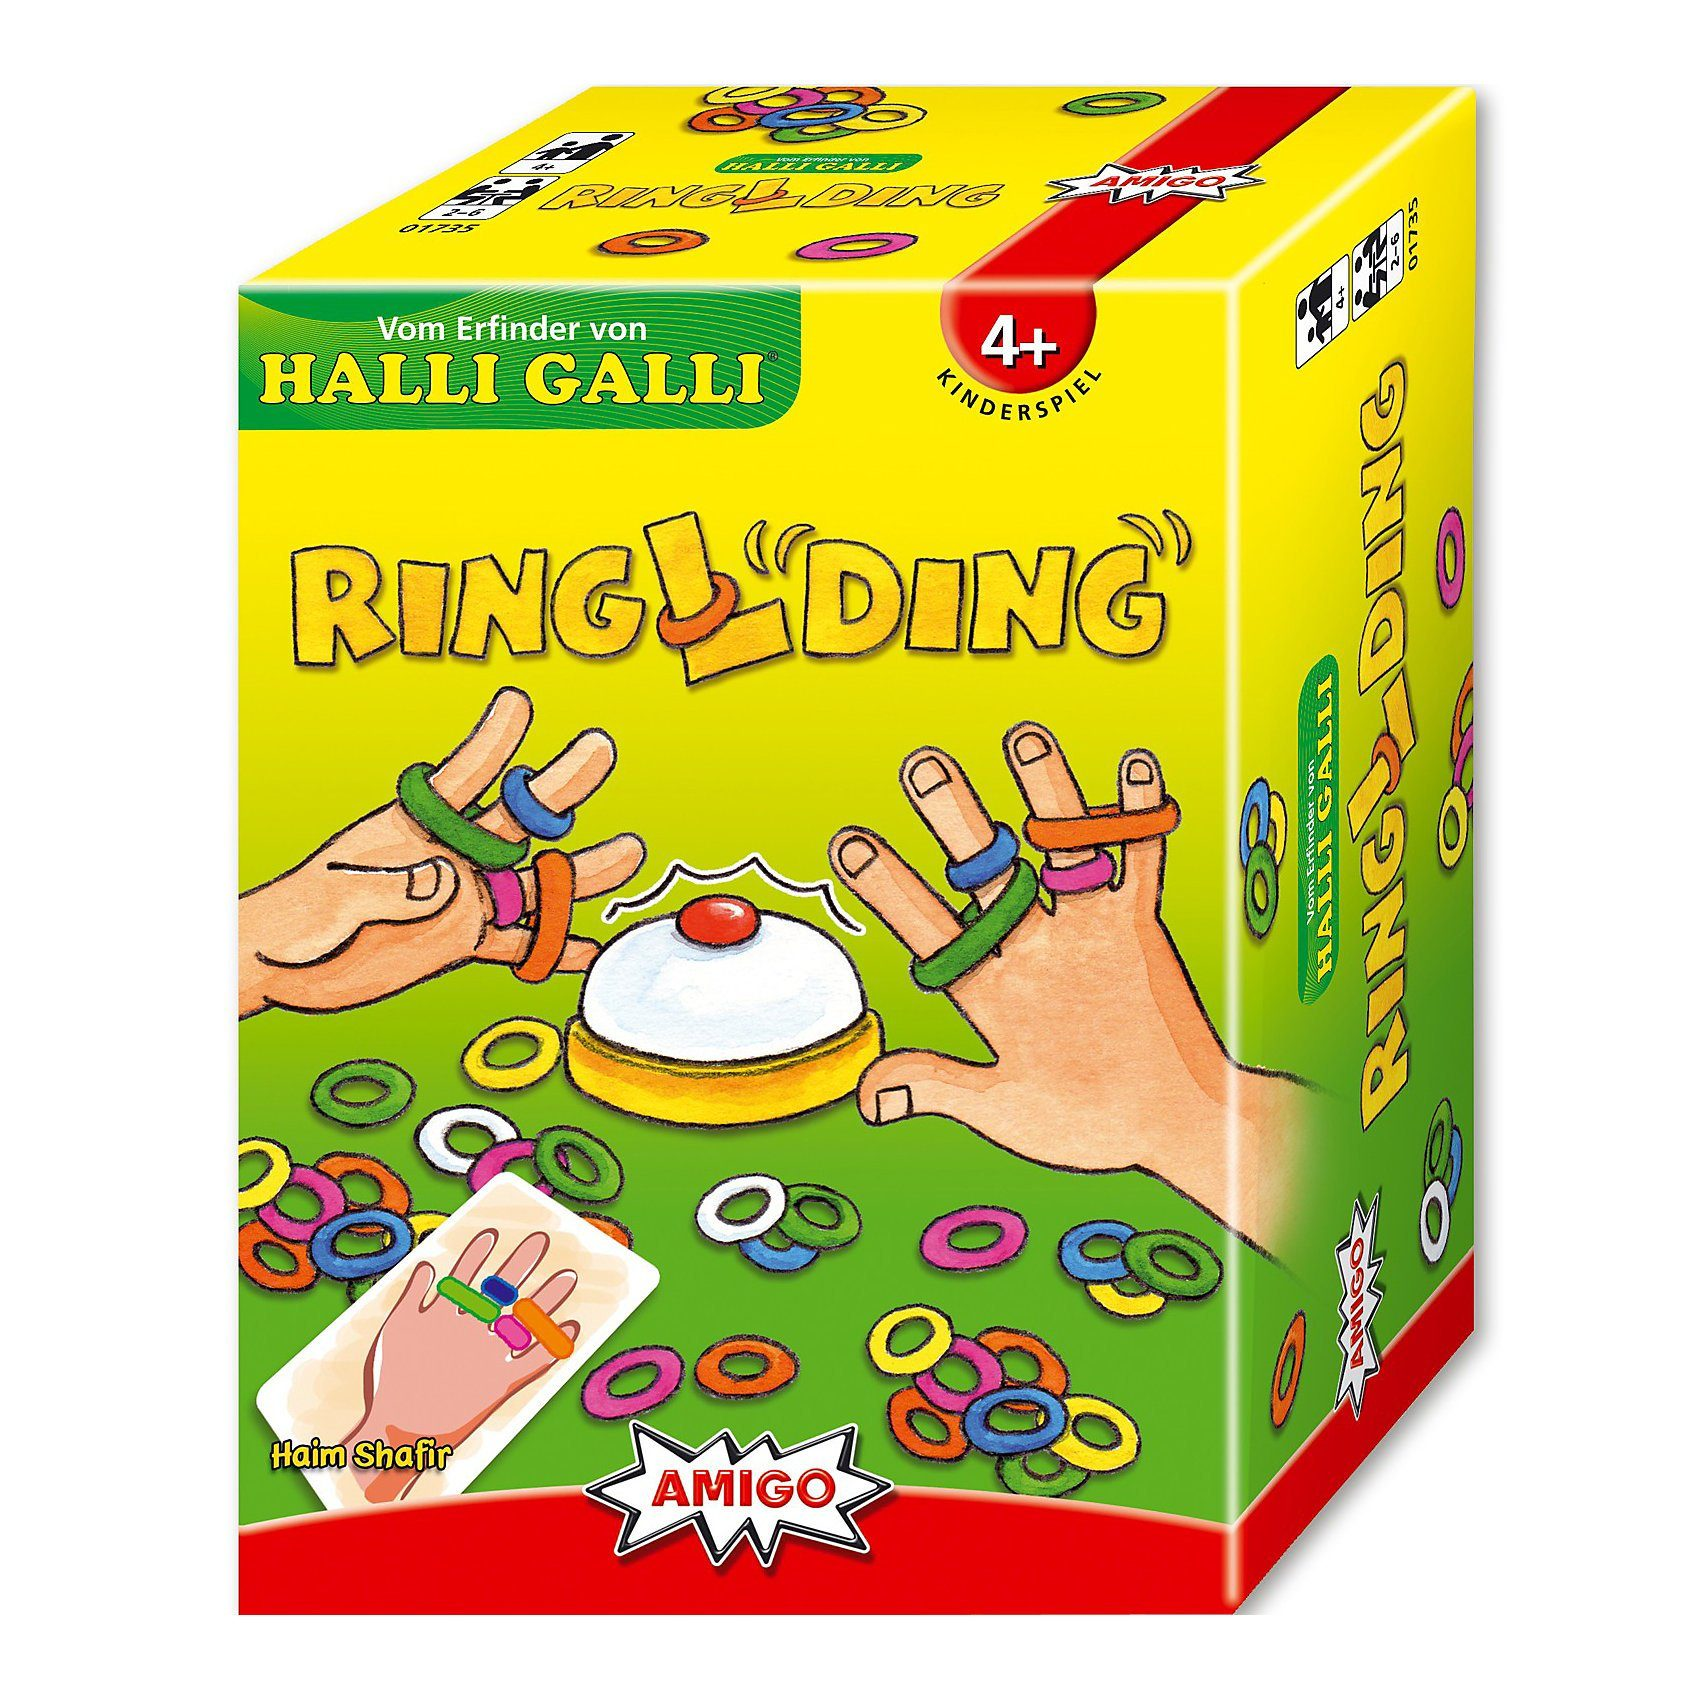 Amigo Ring 'l' Ding